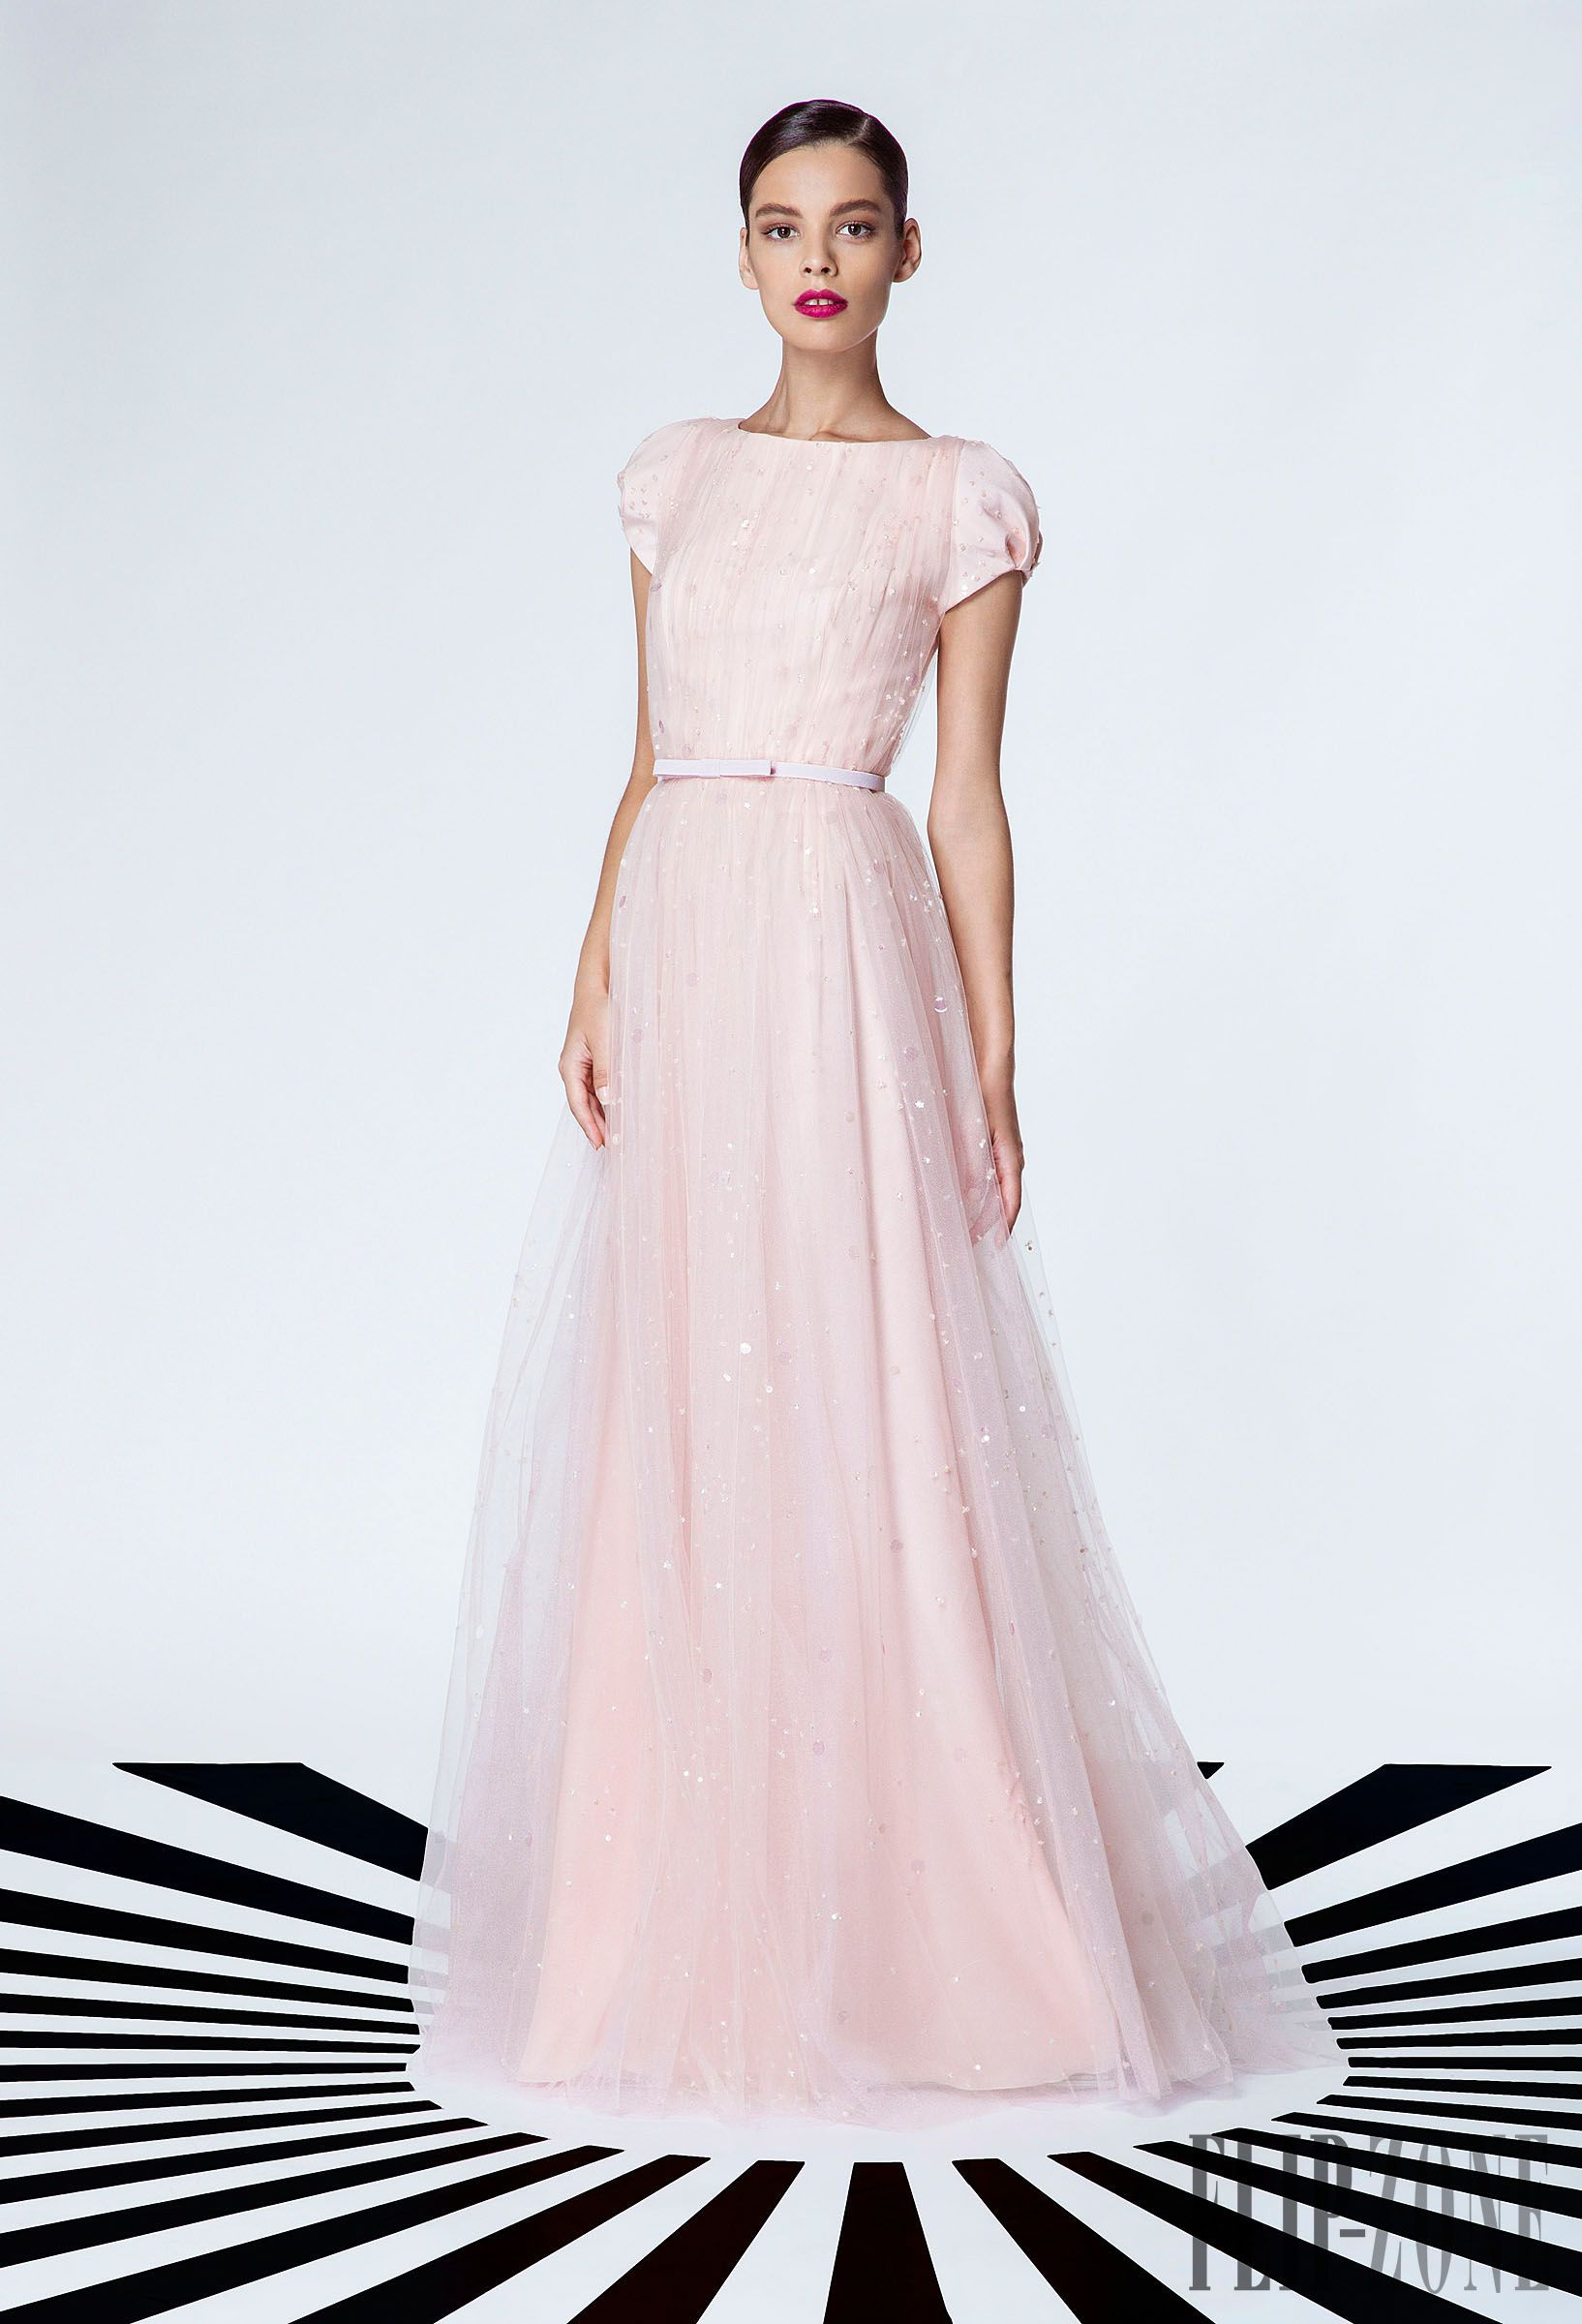 Georges hobeika ucsignatureud ss readytowear fashion n